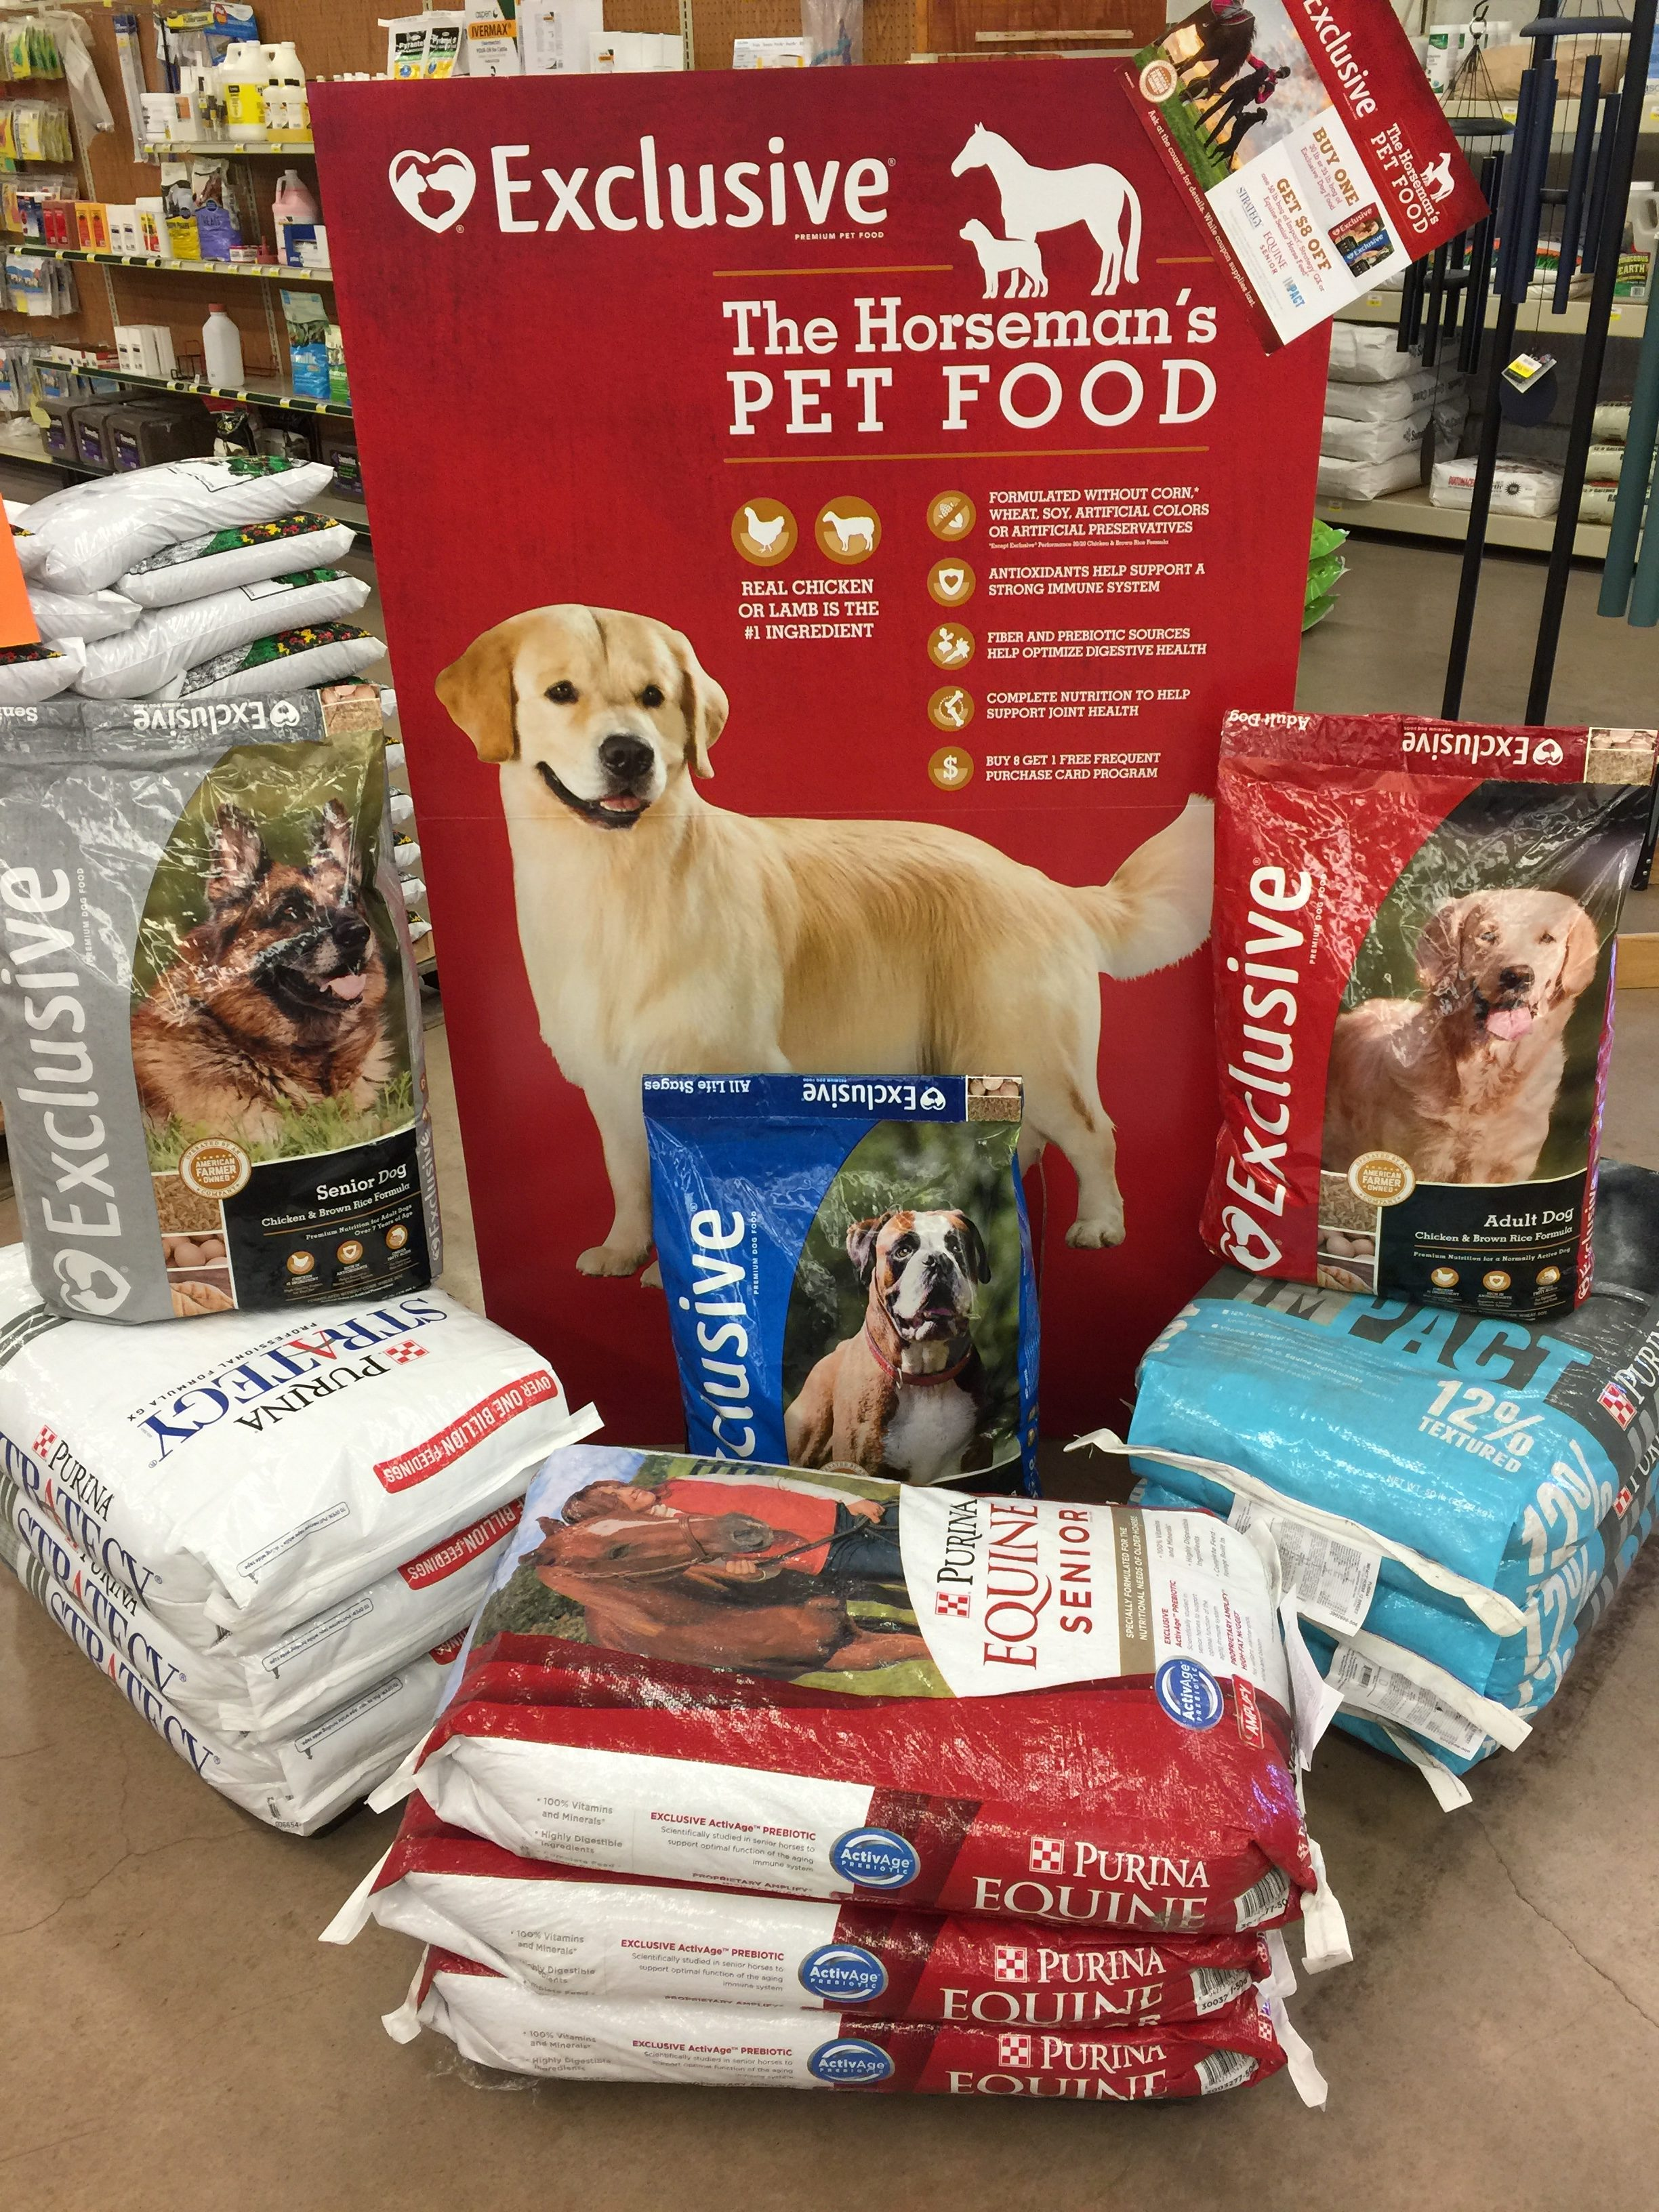 Buy Exclusive Pet Food – Get $8 f Select Purina Horse Feeds Ark